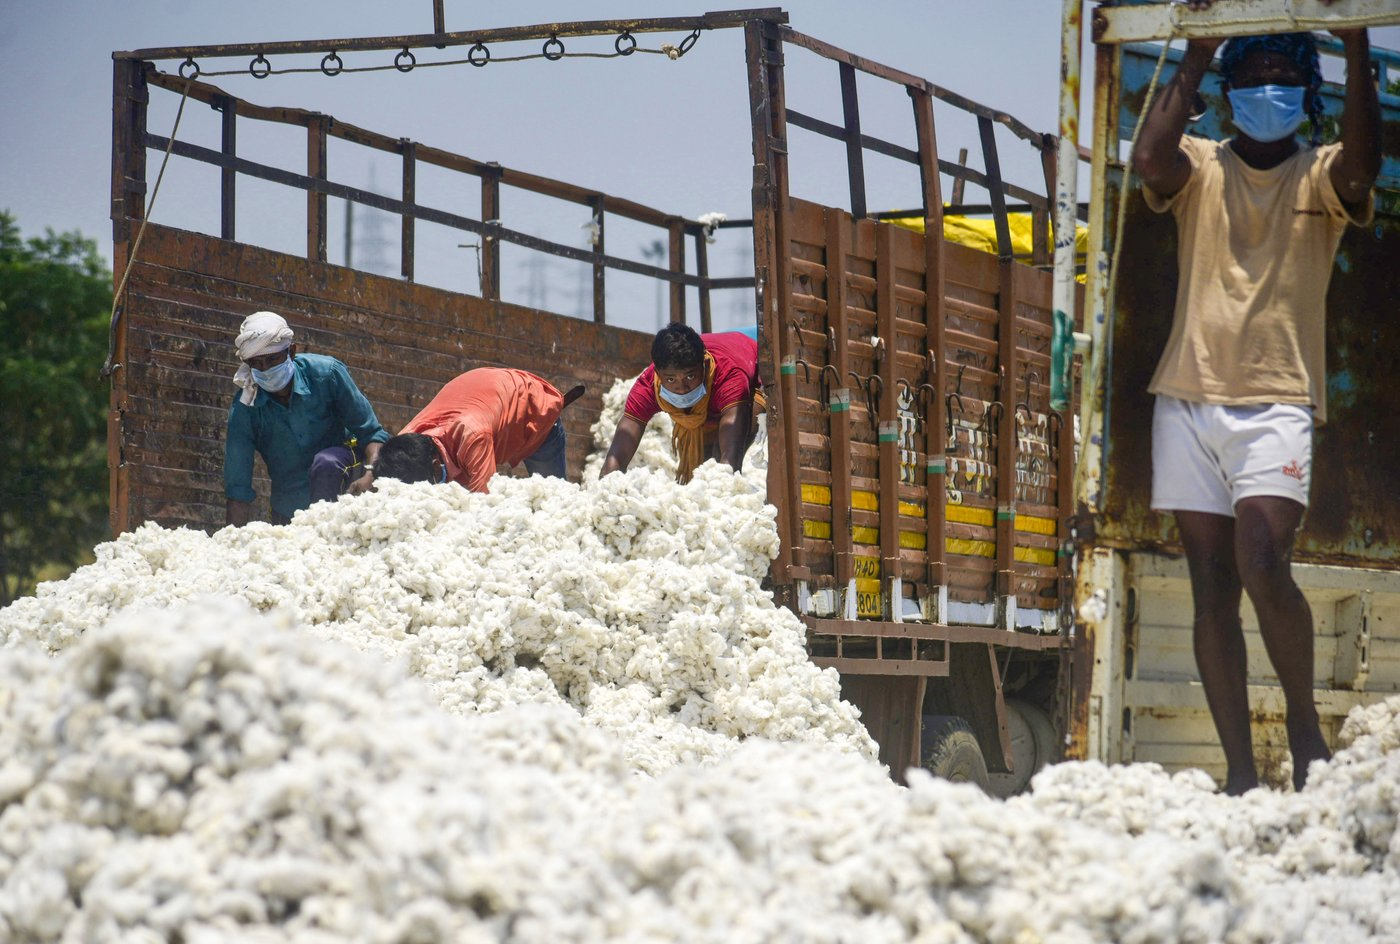 Huge quantities of cash crops lie unsold across India – like cotton in Maharashtra. A hunger crisis looms, yet farmers in Vidarbha a plan to sow cotton, not food crops, once again this kharif season